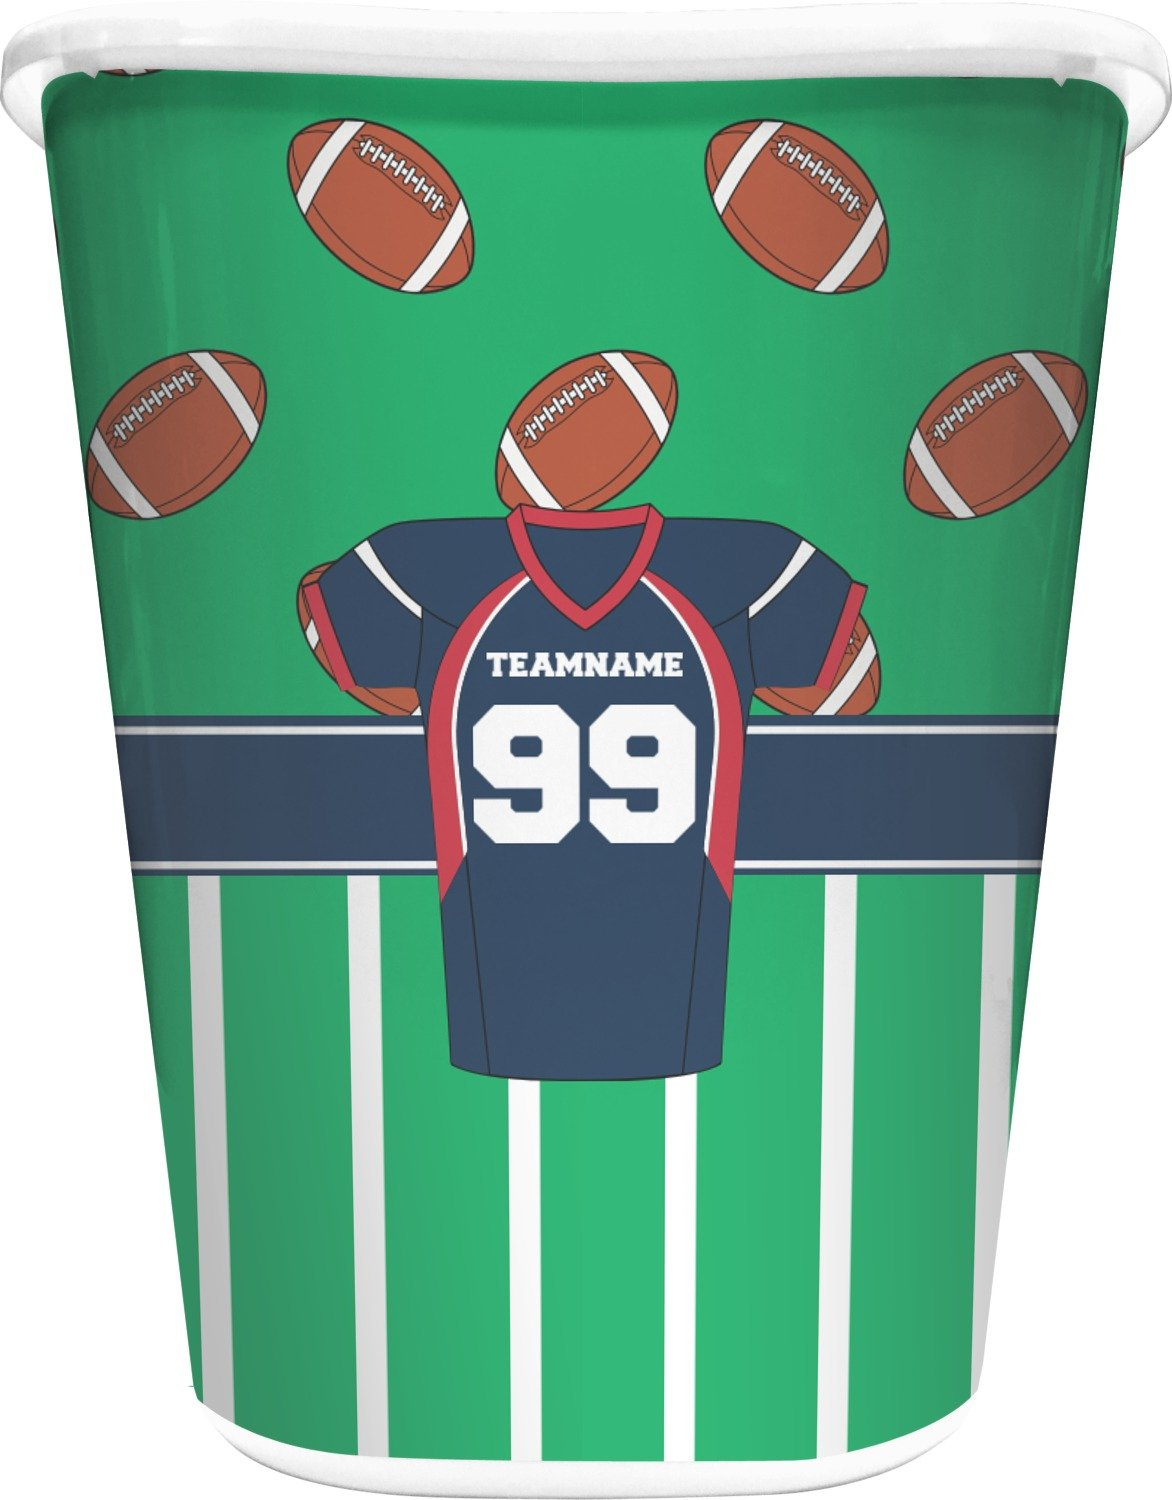 RNK Shops Football Jersey Waste Basket - Single Sided (White) (Personalized)